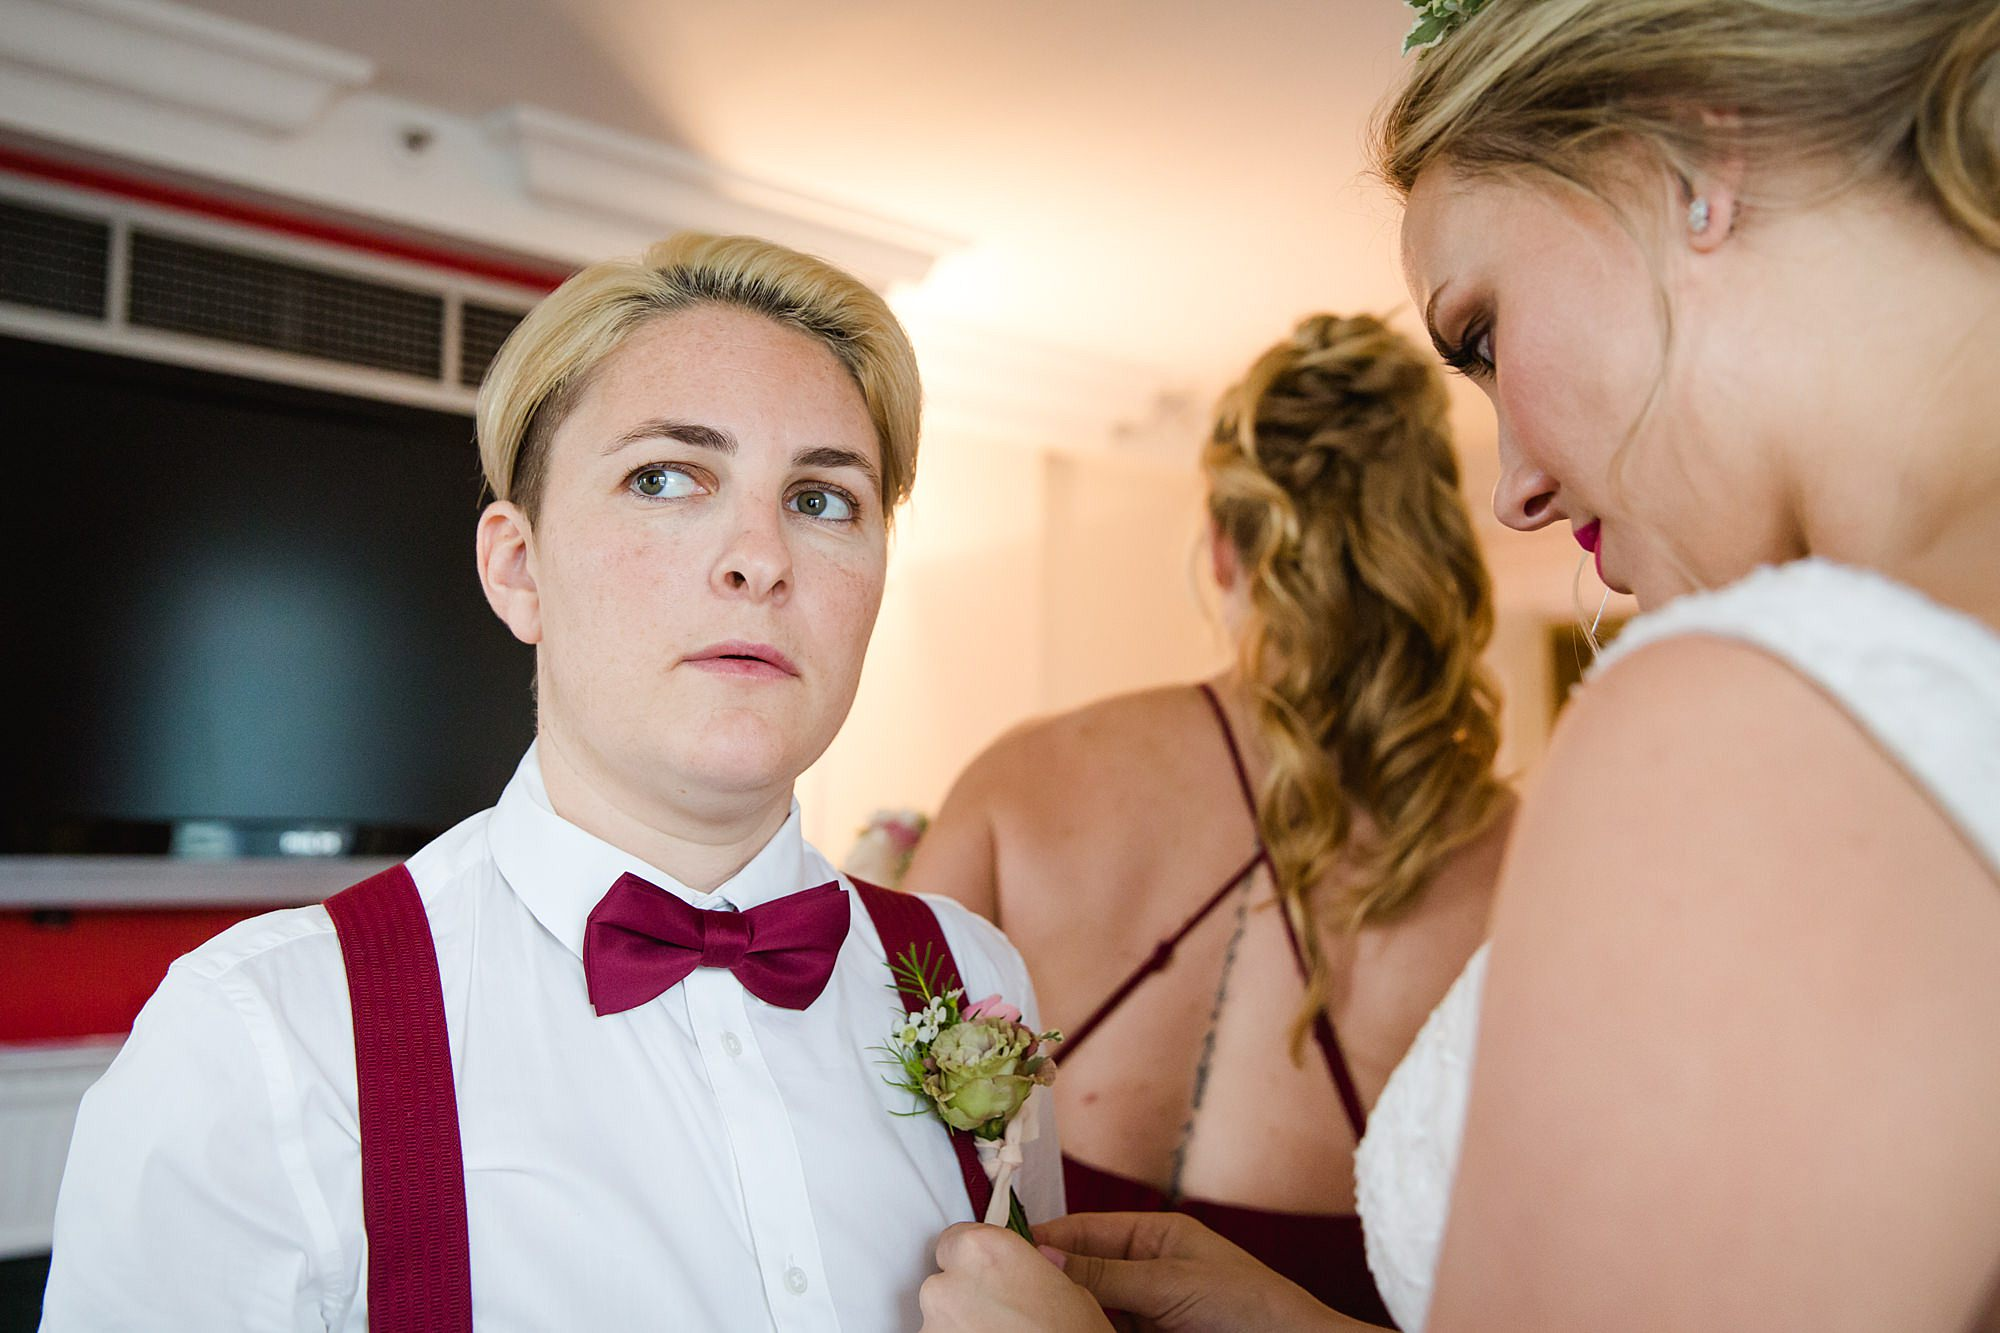 bride puts corsage on bridesmaid